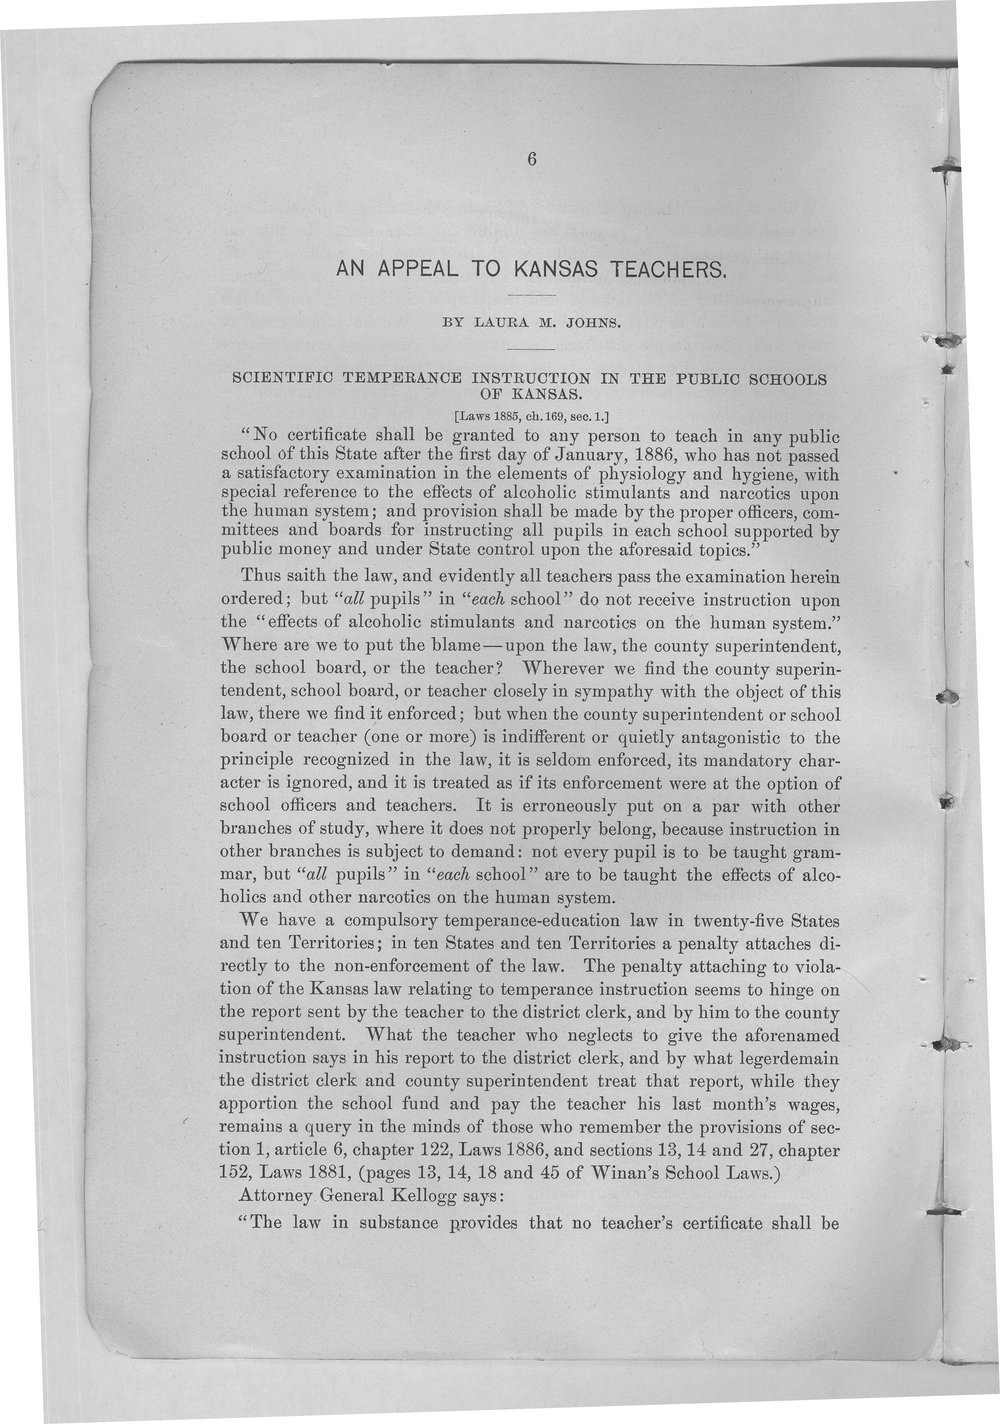 An appeal to Kansas teachers in behalf of temperance, health, and moral purity - 6